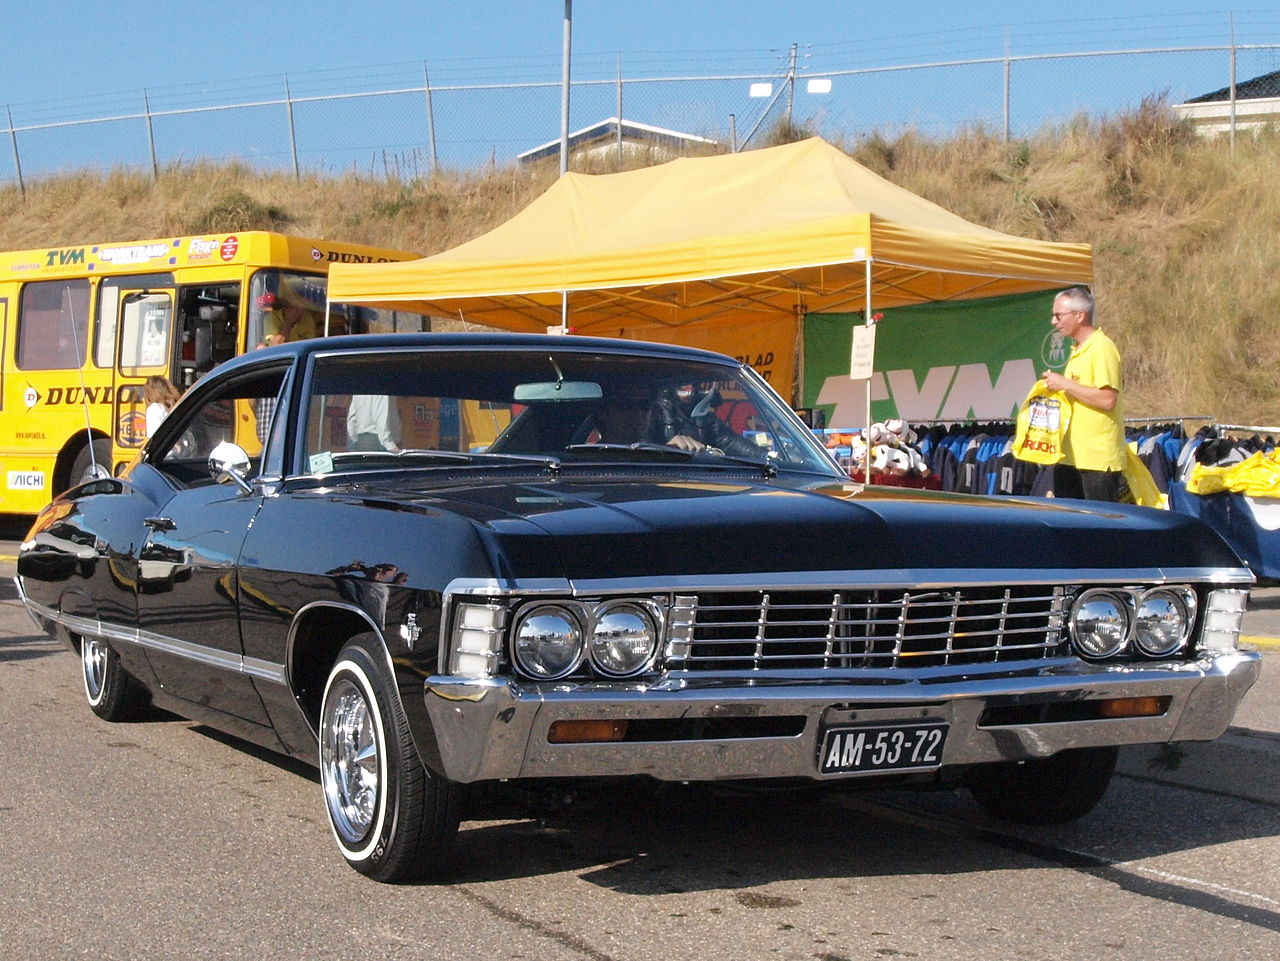 File:Chevrolet Impala Sport Coupe dutch licence registration AM-53